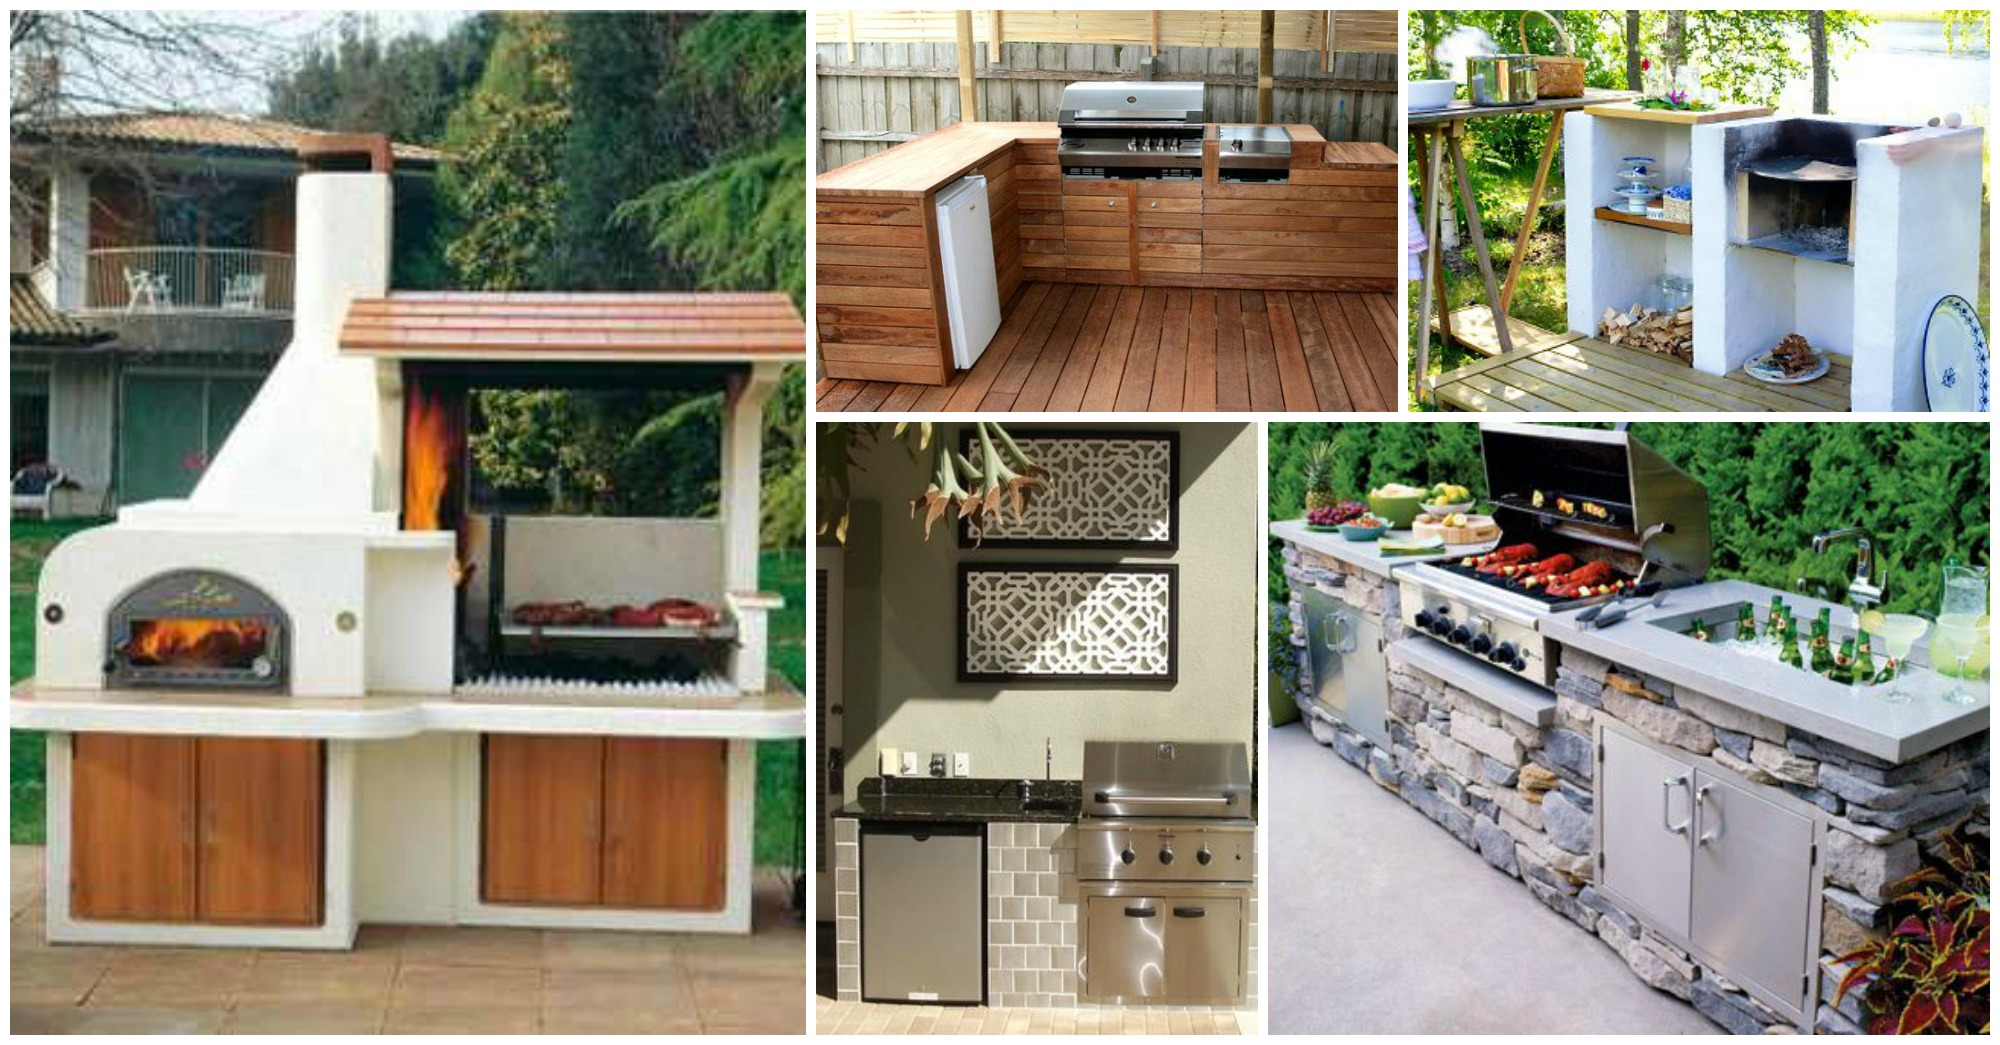 10 Interesting Outdoor Kitchens That Will Make You Say WoW